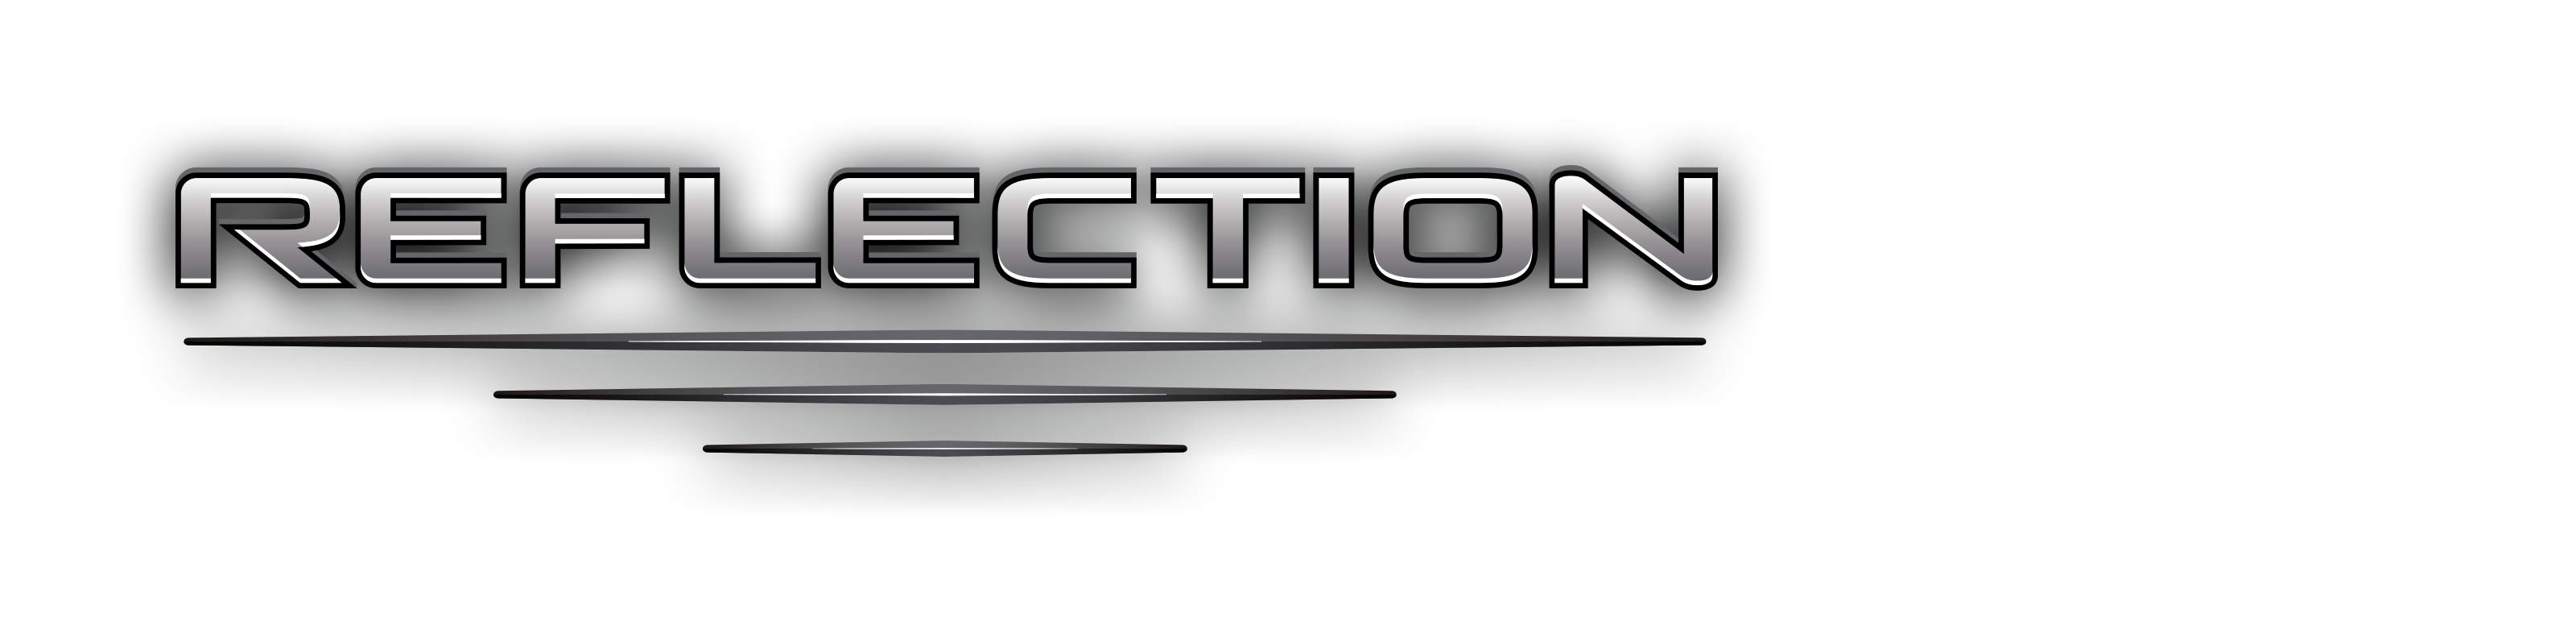 ReflectionFW-logo-dark.png